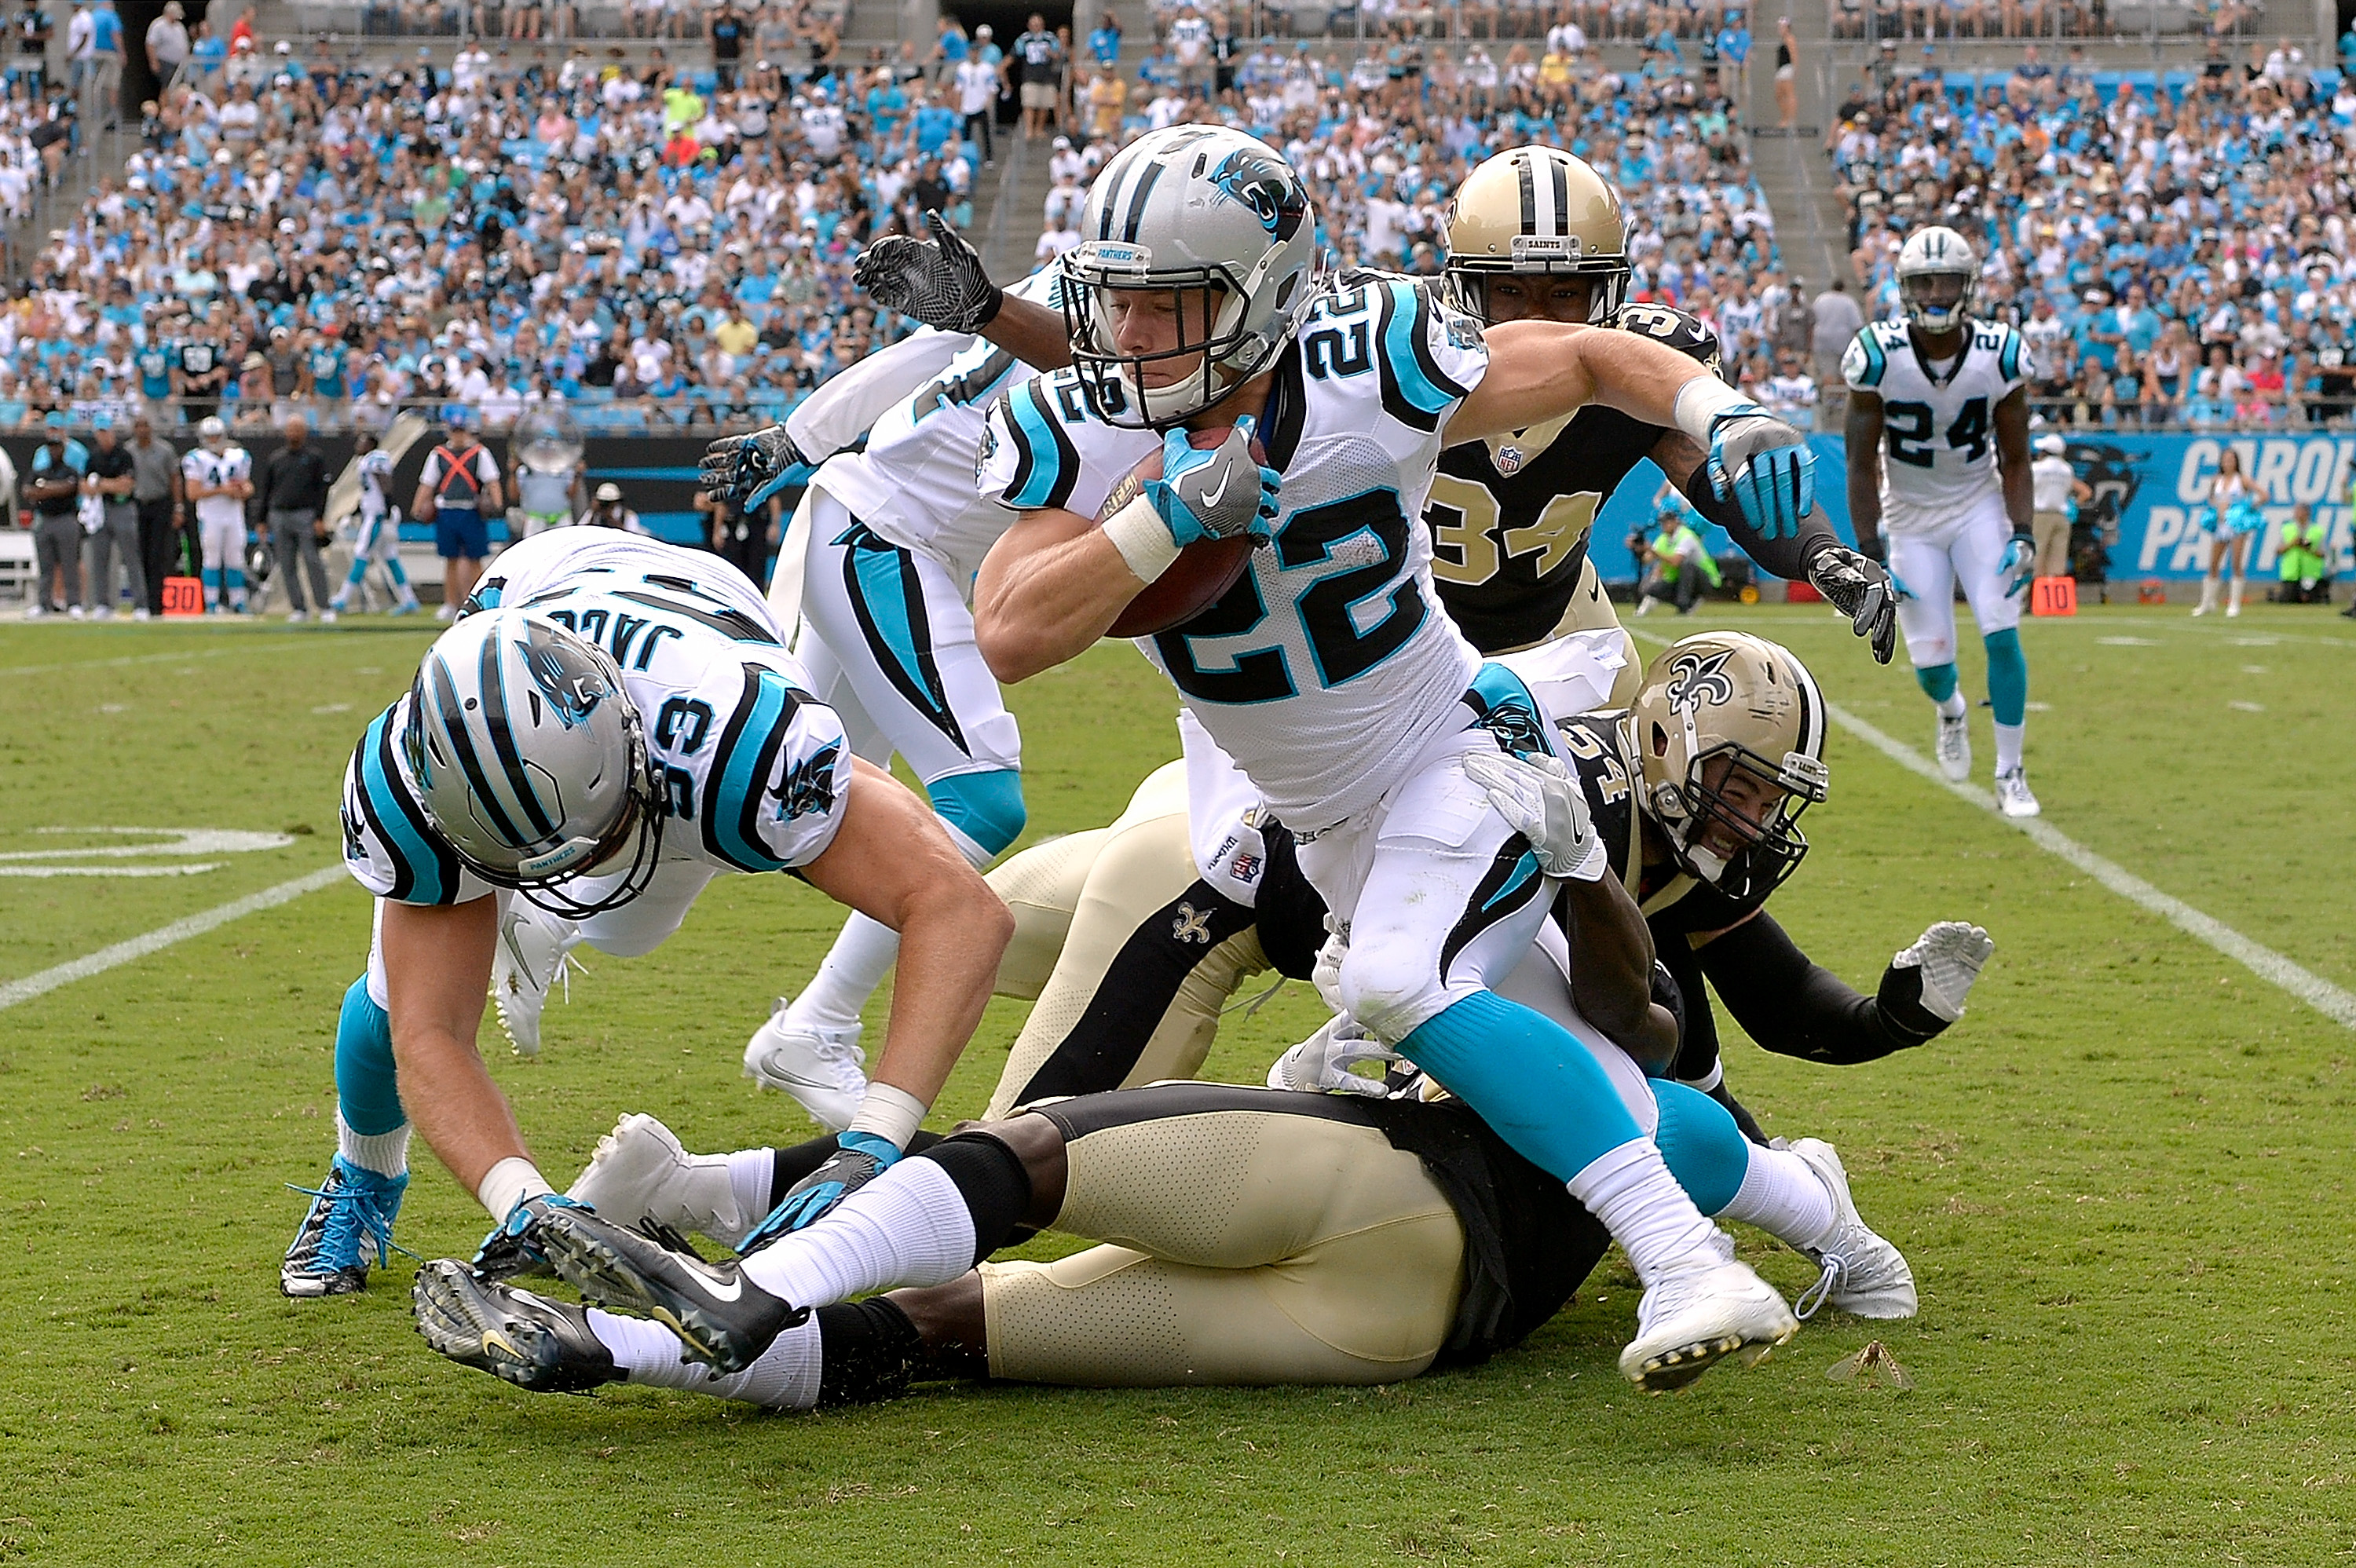 Saints defense bracing for first test vs Panthers' Olsen